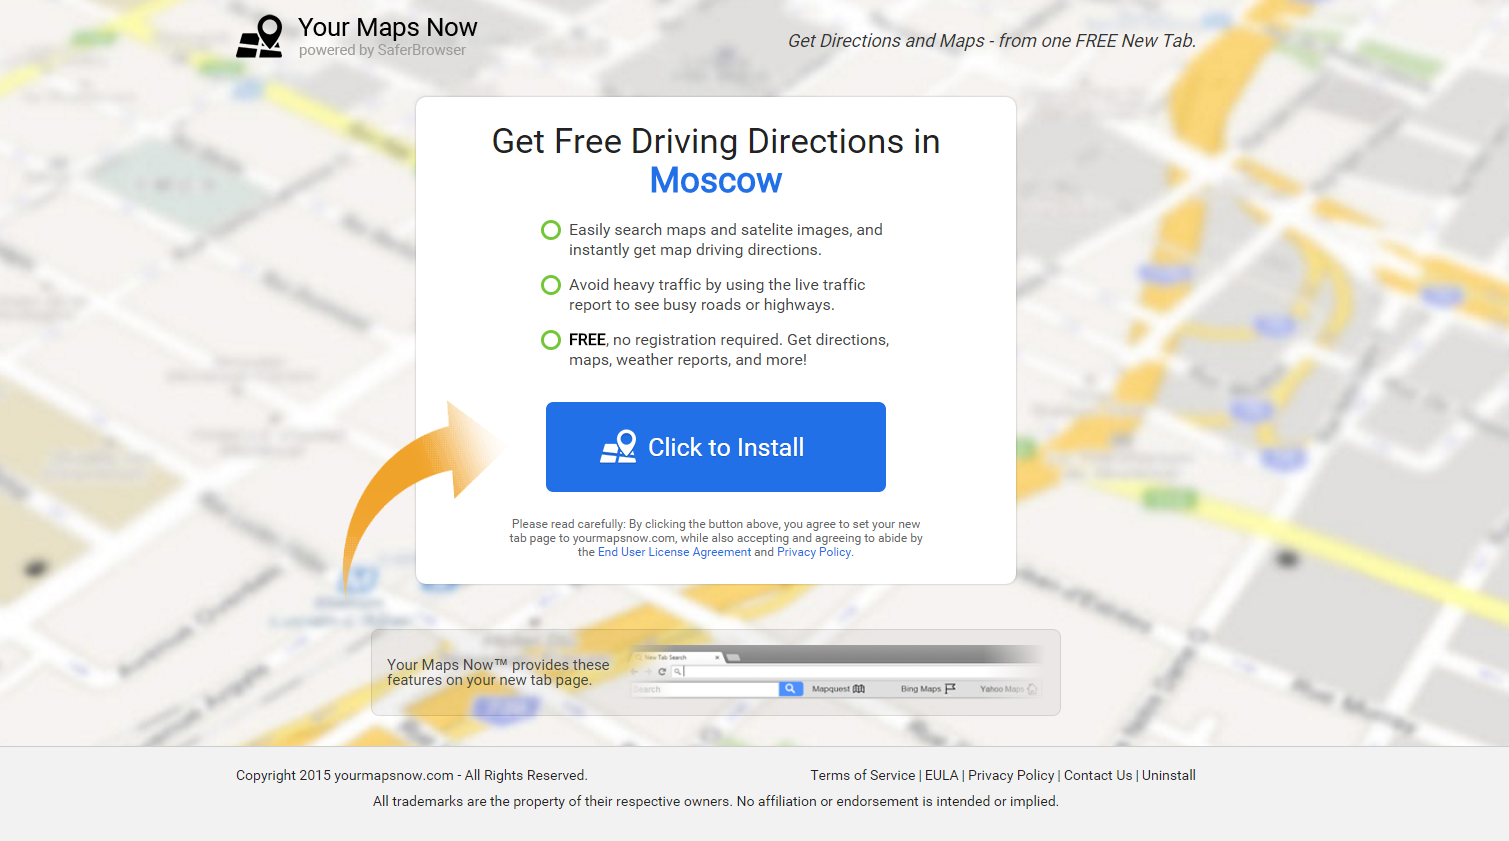 ads by Your Maps Now